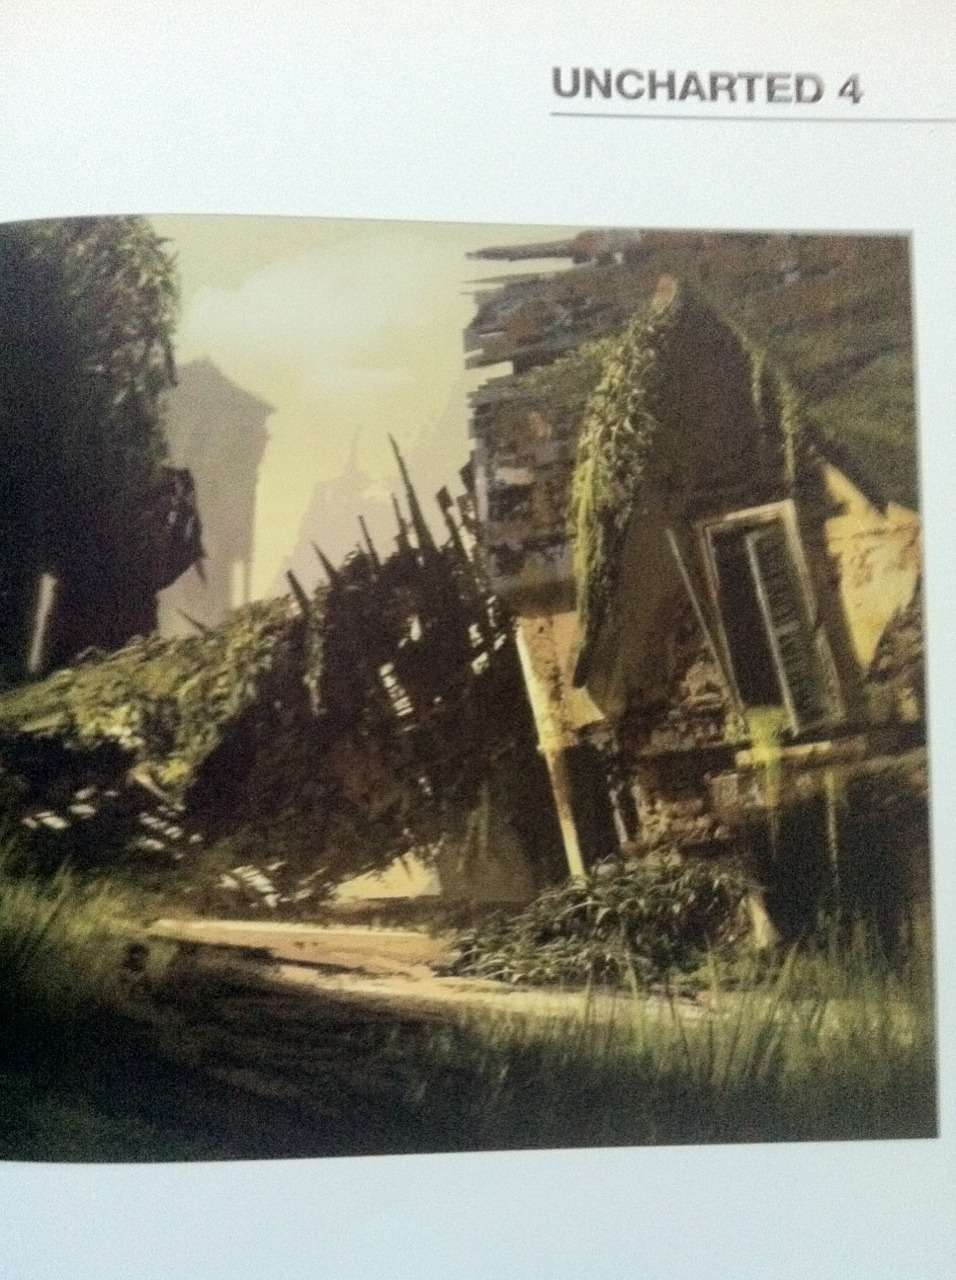 Uncharted 4: A Thief's End Concept Art Emerges 1